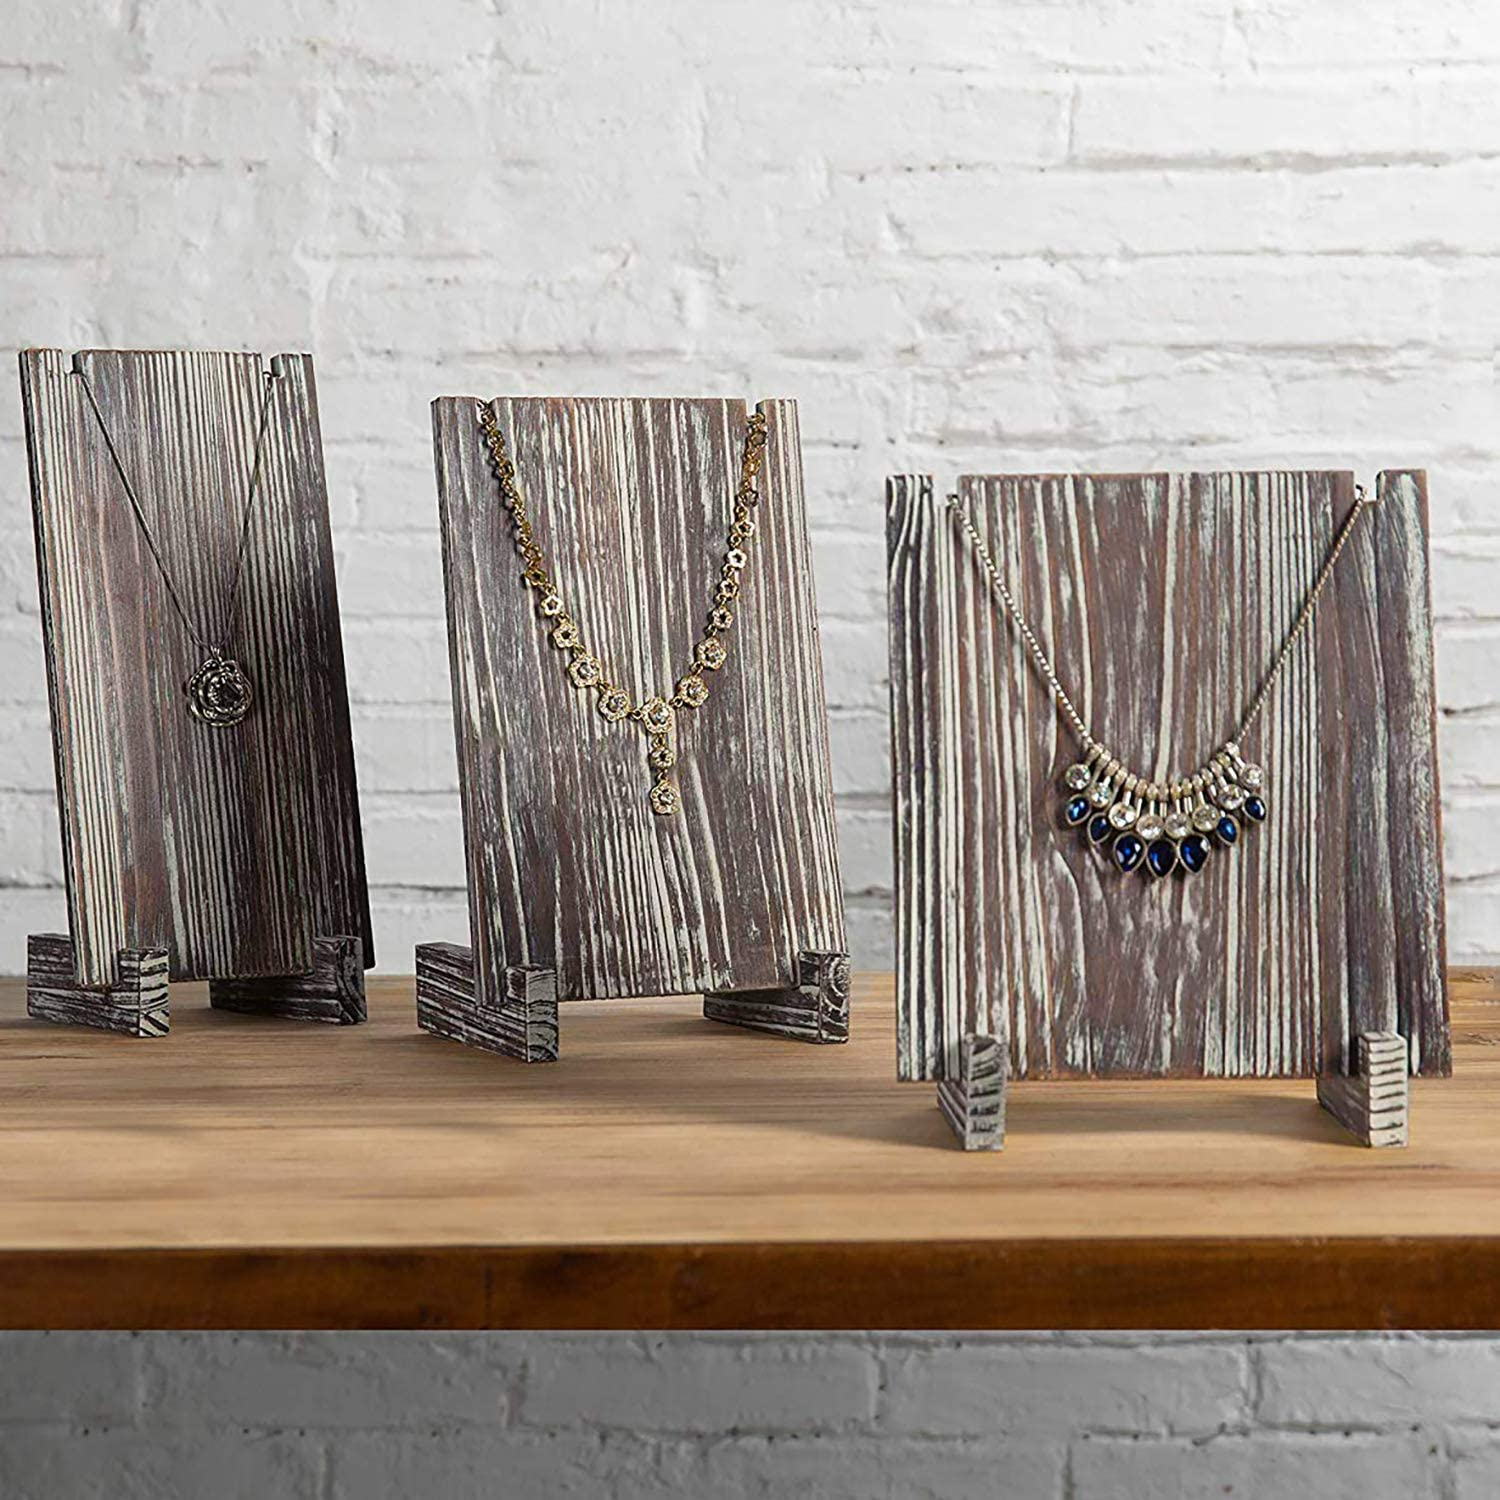 MyGift Set of 3 Rustic Torched Wood Jewelry Tower, Retail Necklace Display Plank